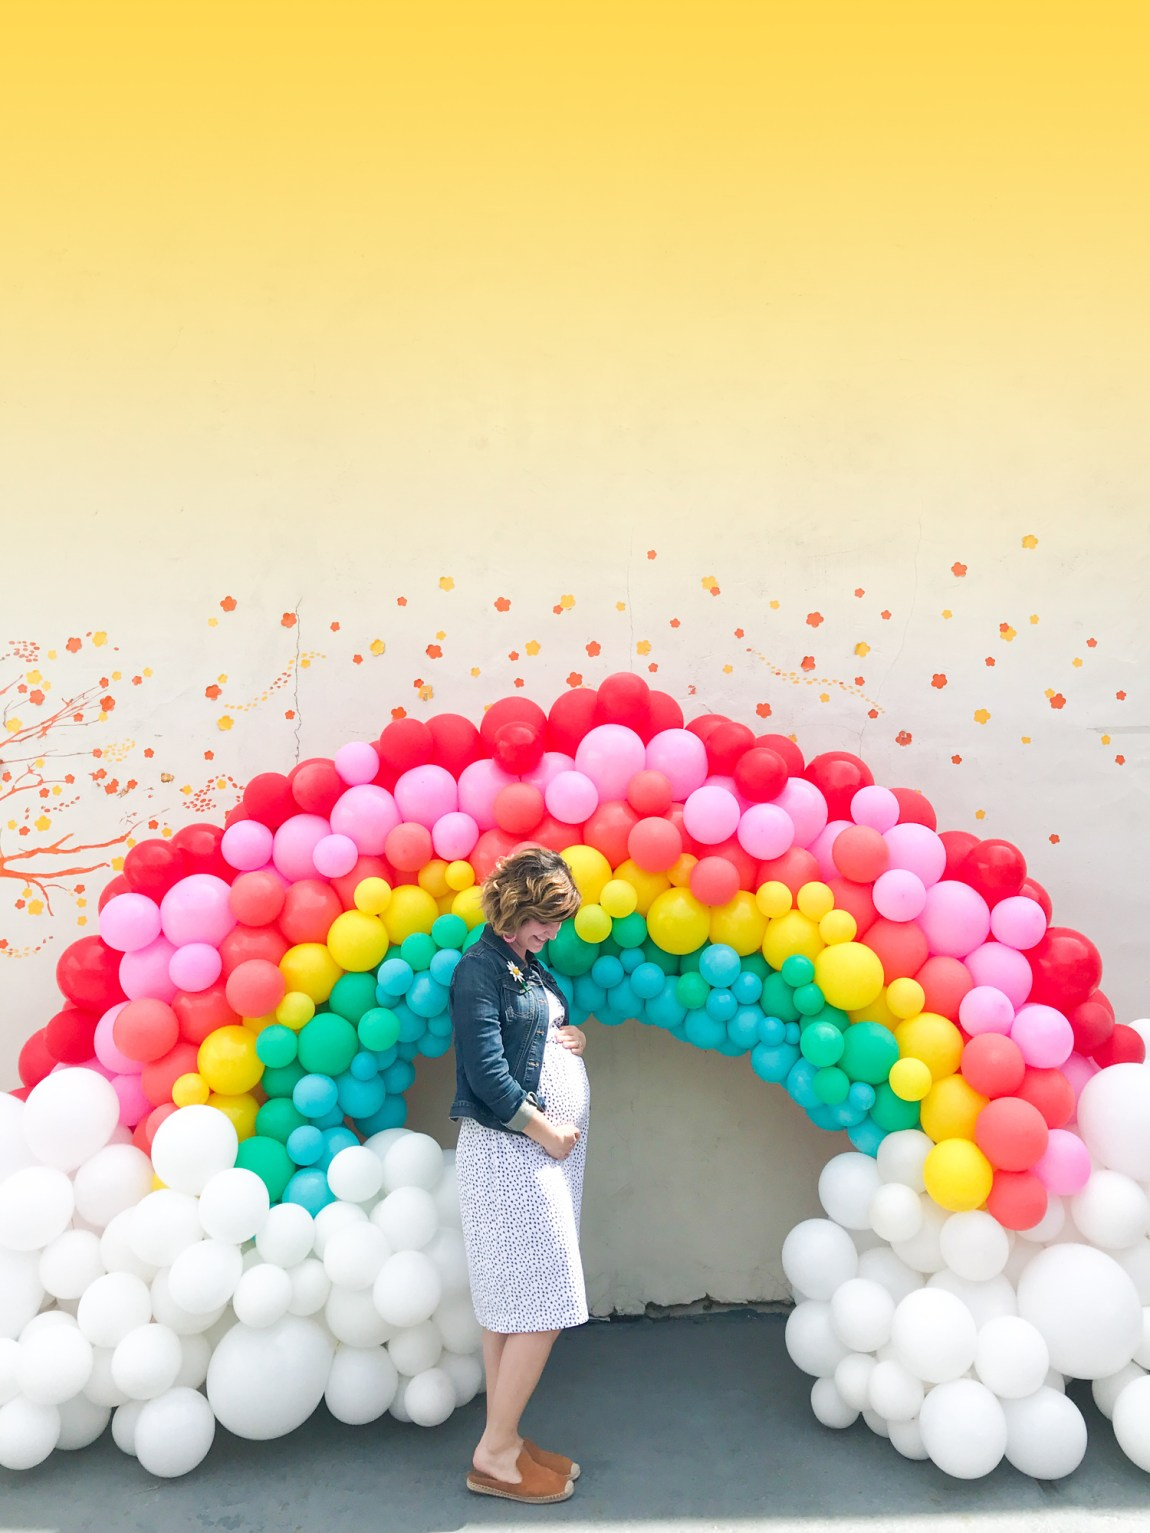 Sarah standing under a balloon rainbow arch.